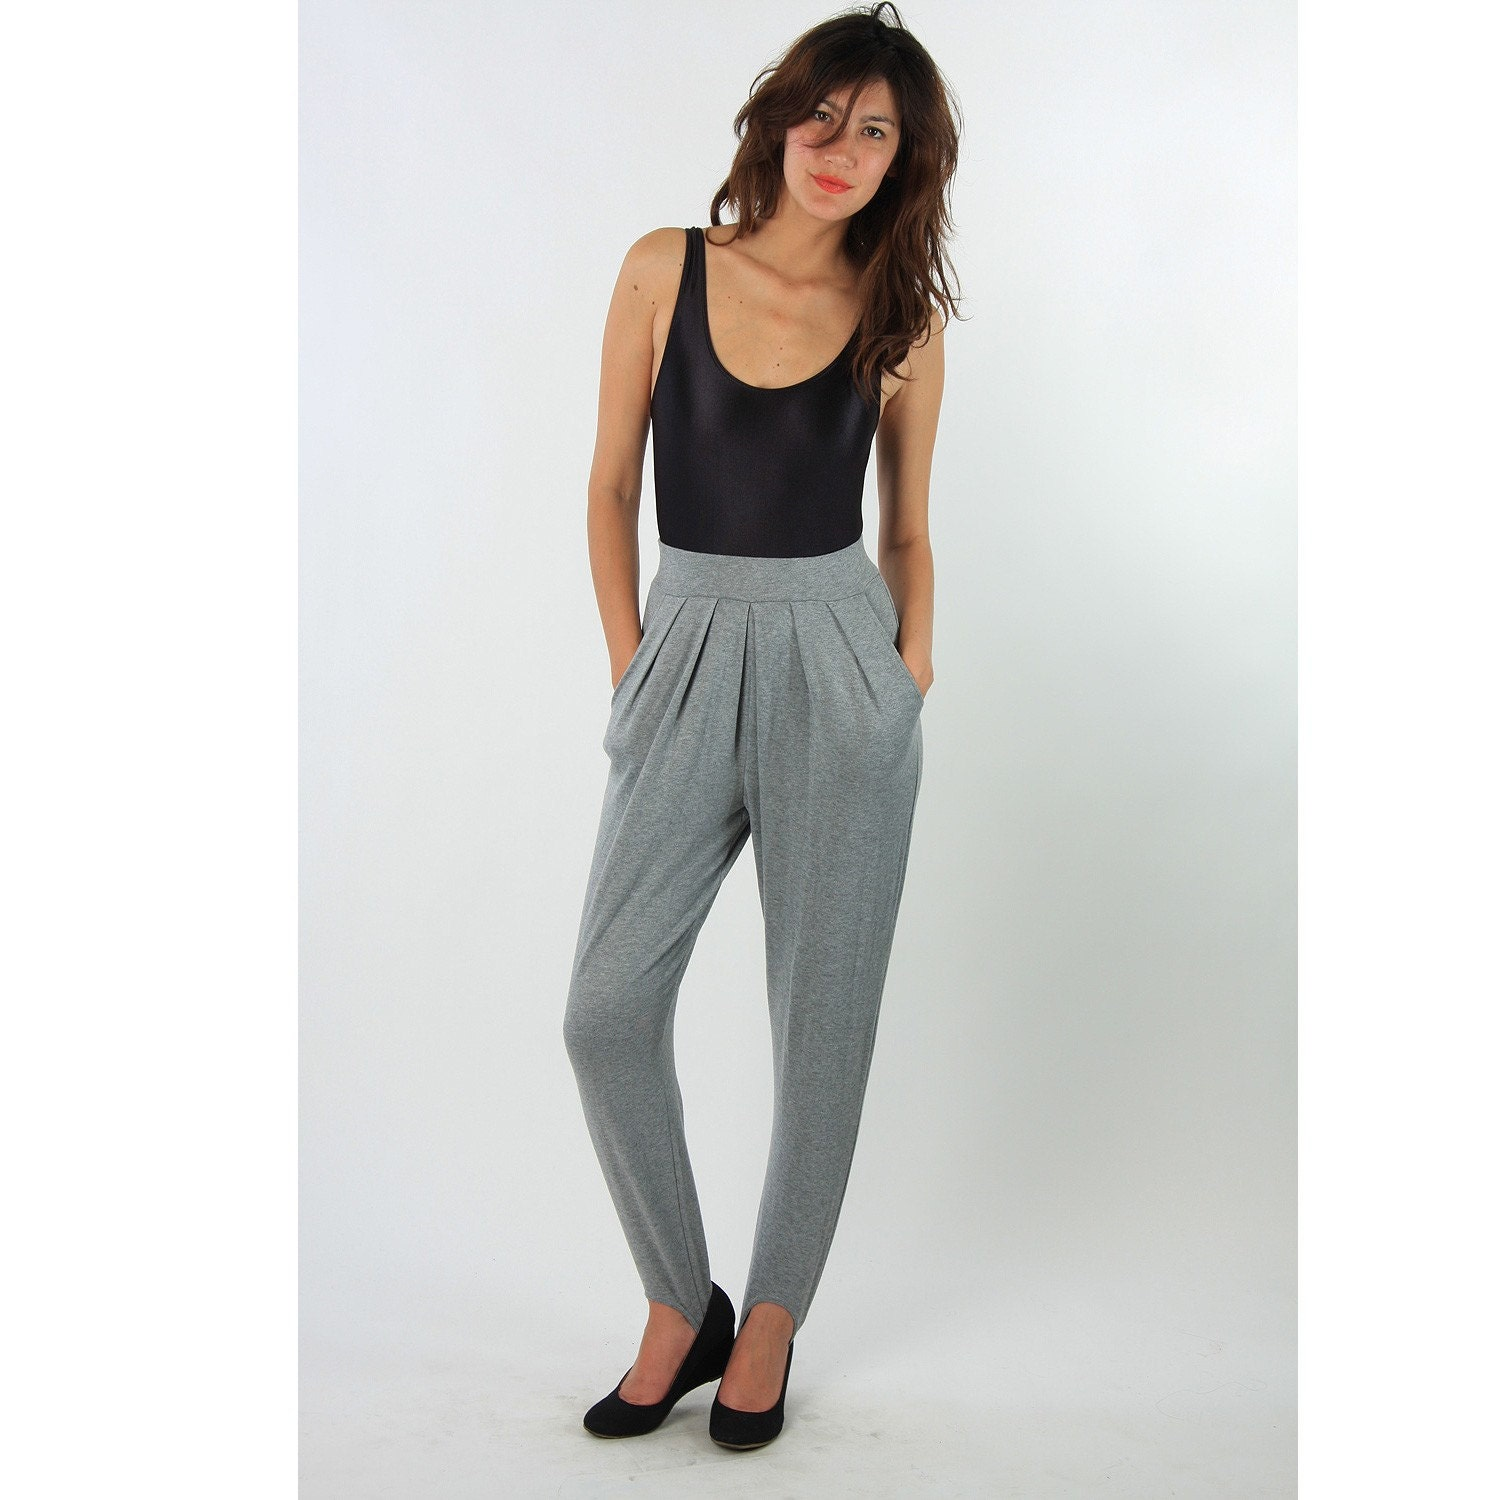 Summer Sale 80s Grey Stretchy High Waist Stirrup Pants